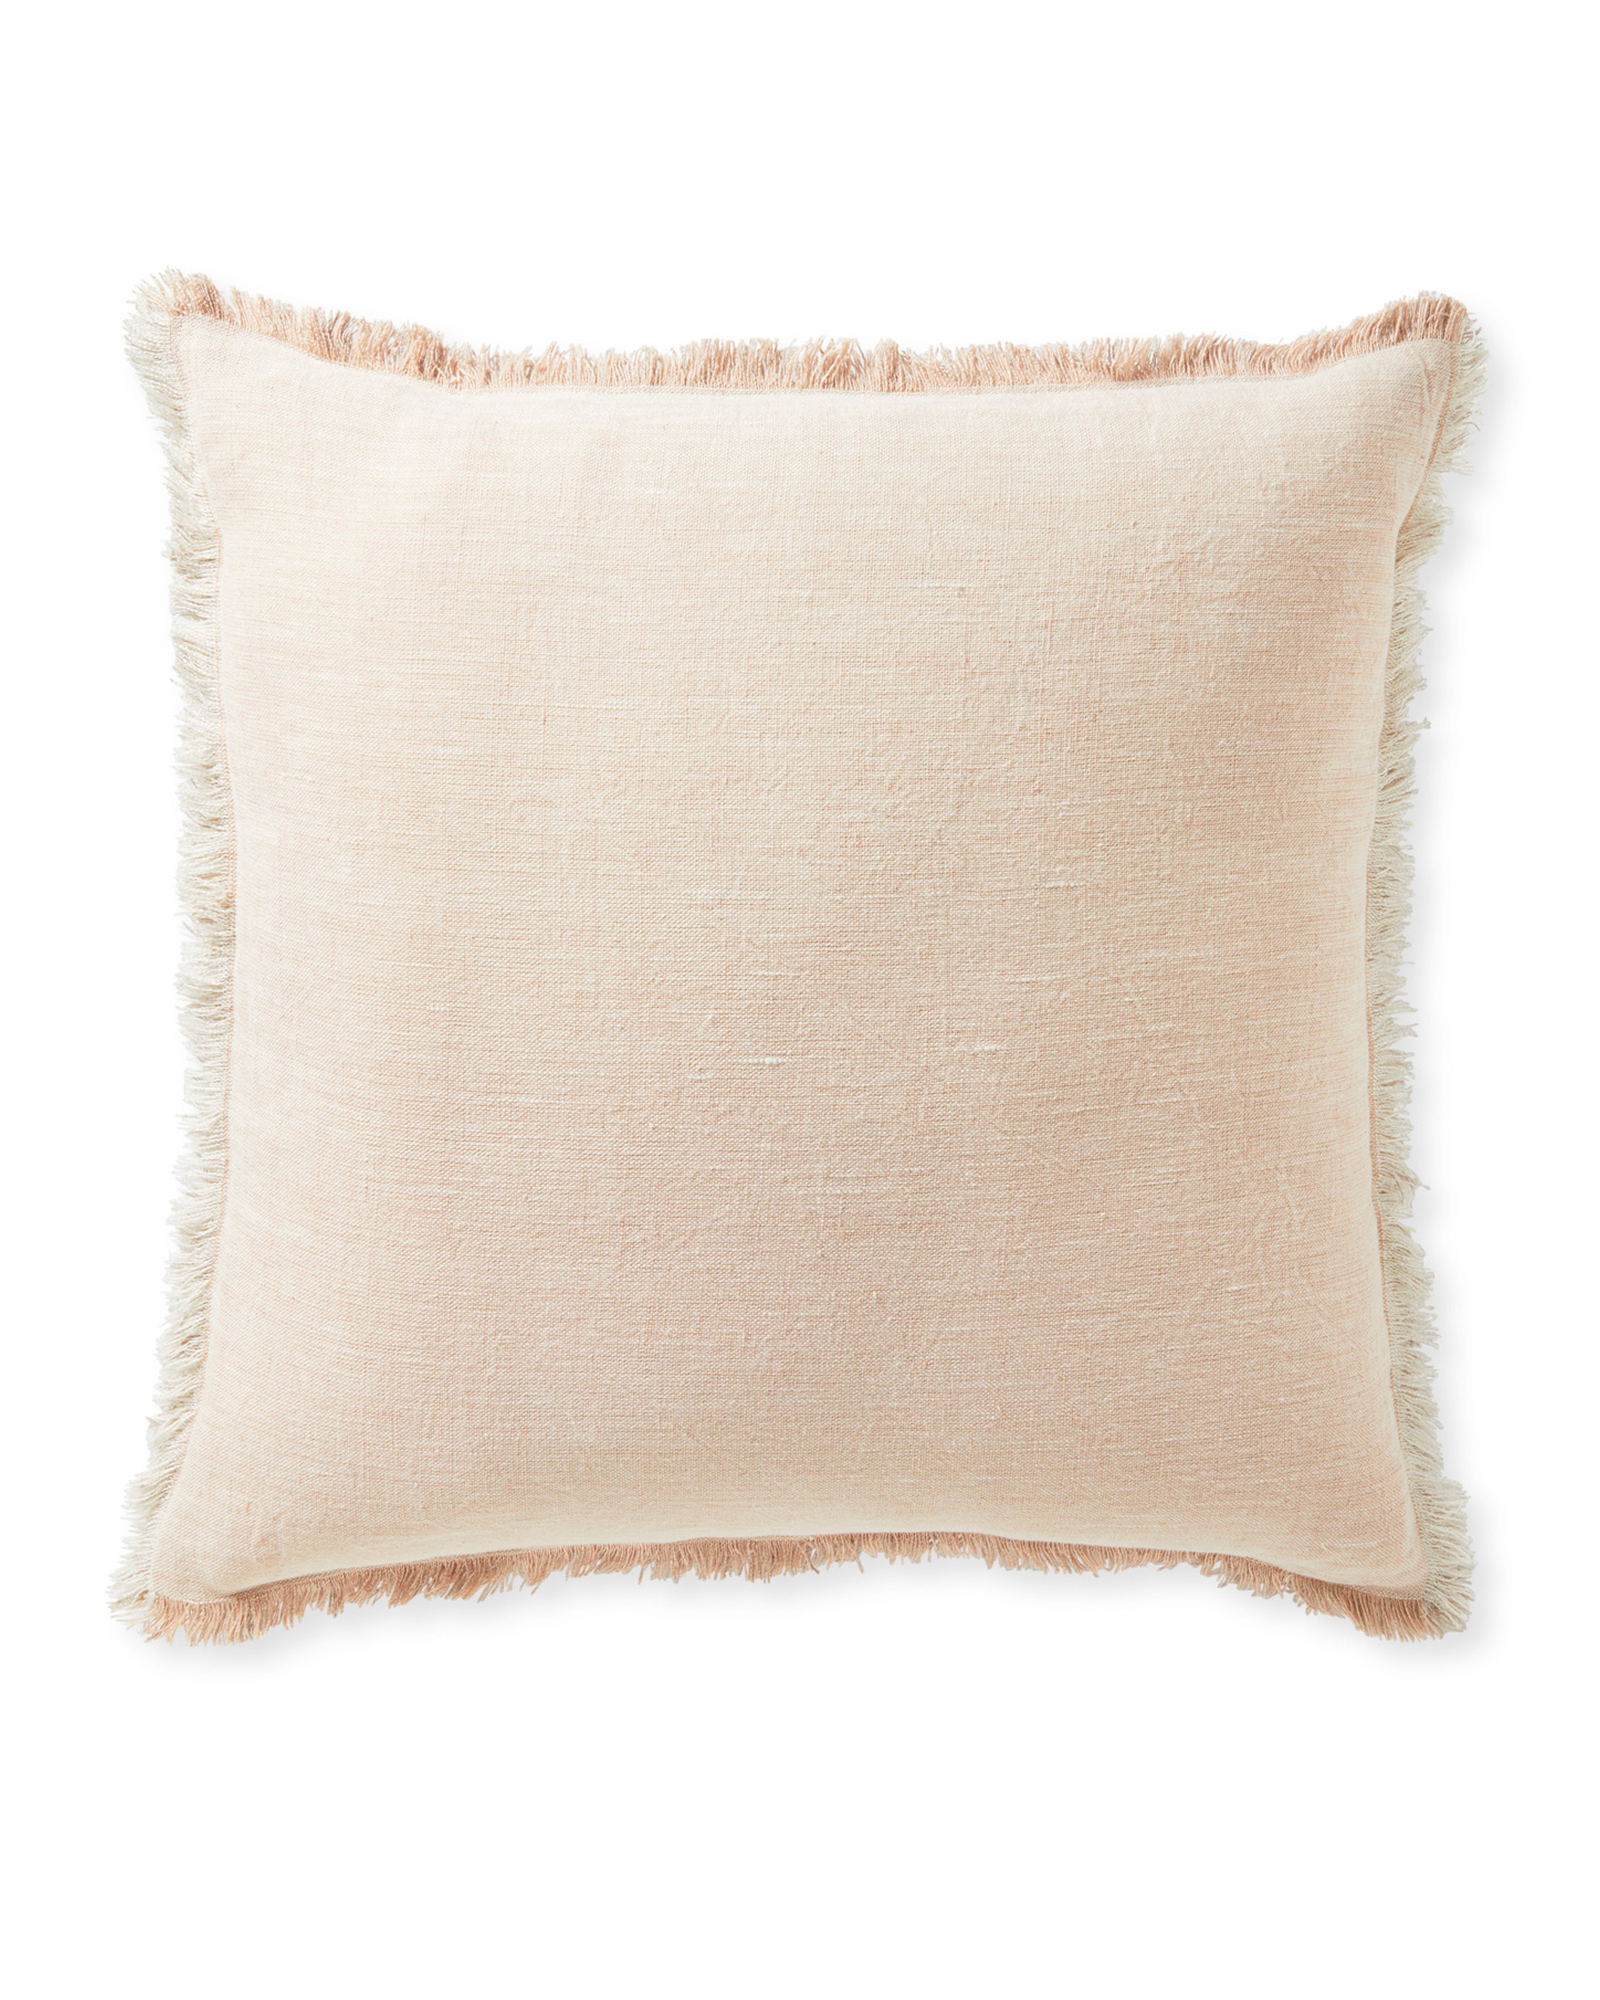 Avalis Pillow Cover, Pink Sand